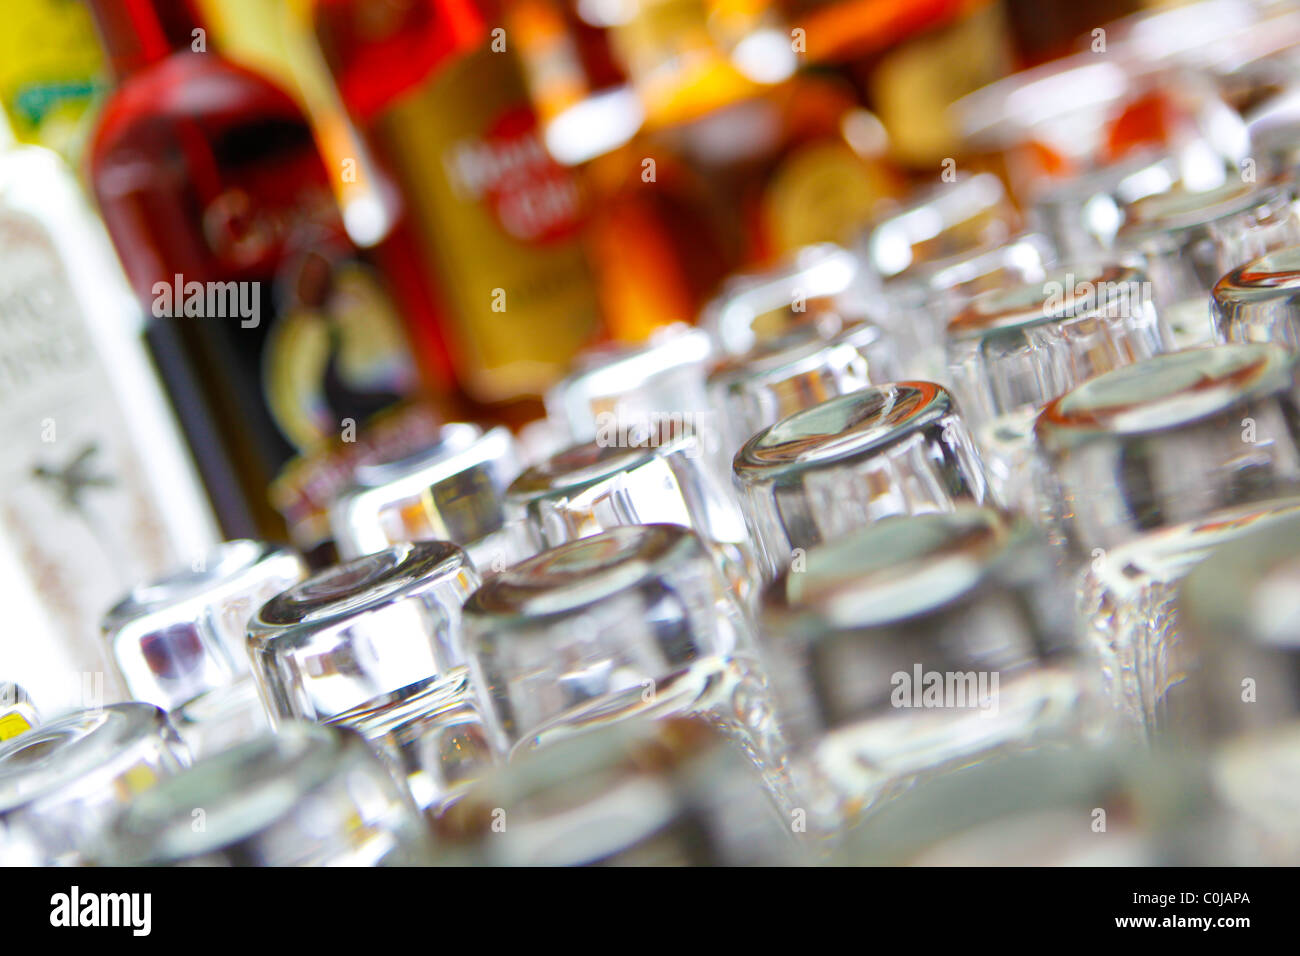 Glasses and bottles of alcohol on a bar - Stock Image